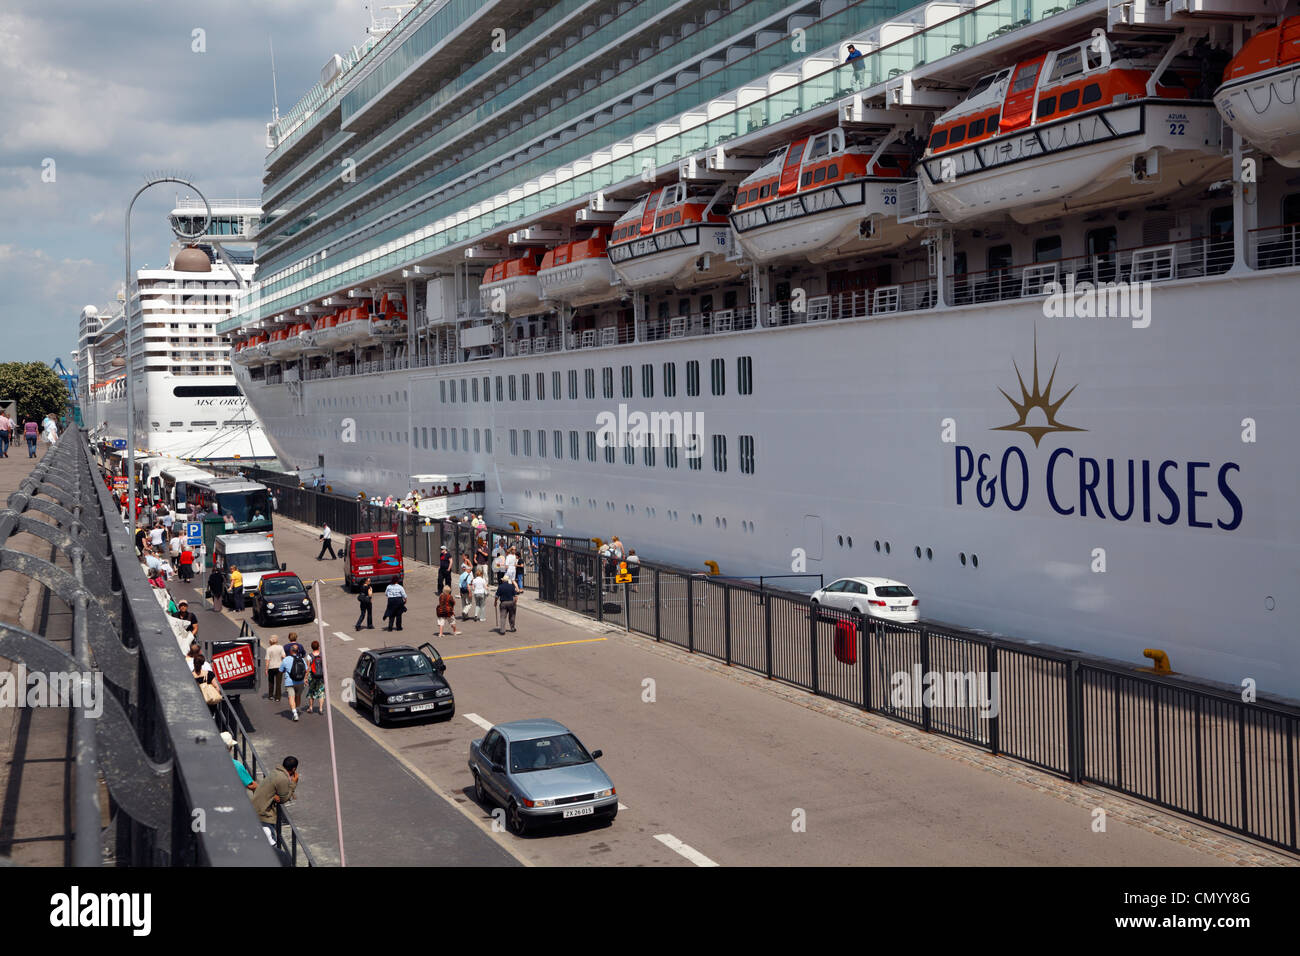 Business on the quay at Langelinie when the P&O cruise ship the MS AZURA is calling at the port of Copenhagen, - Stock Image